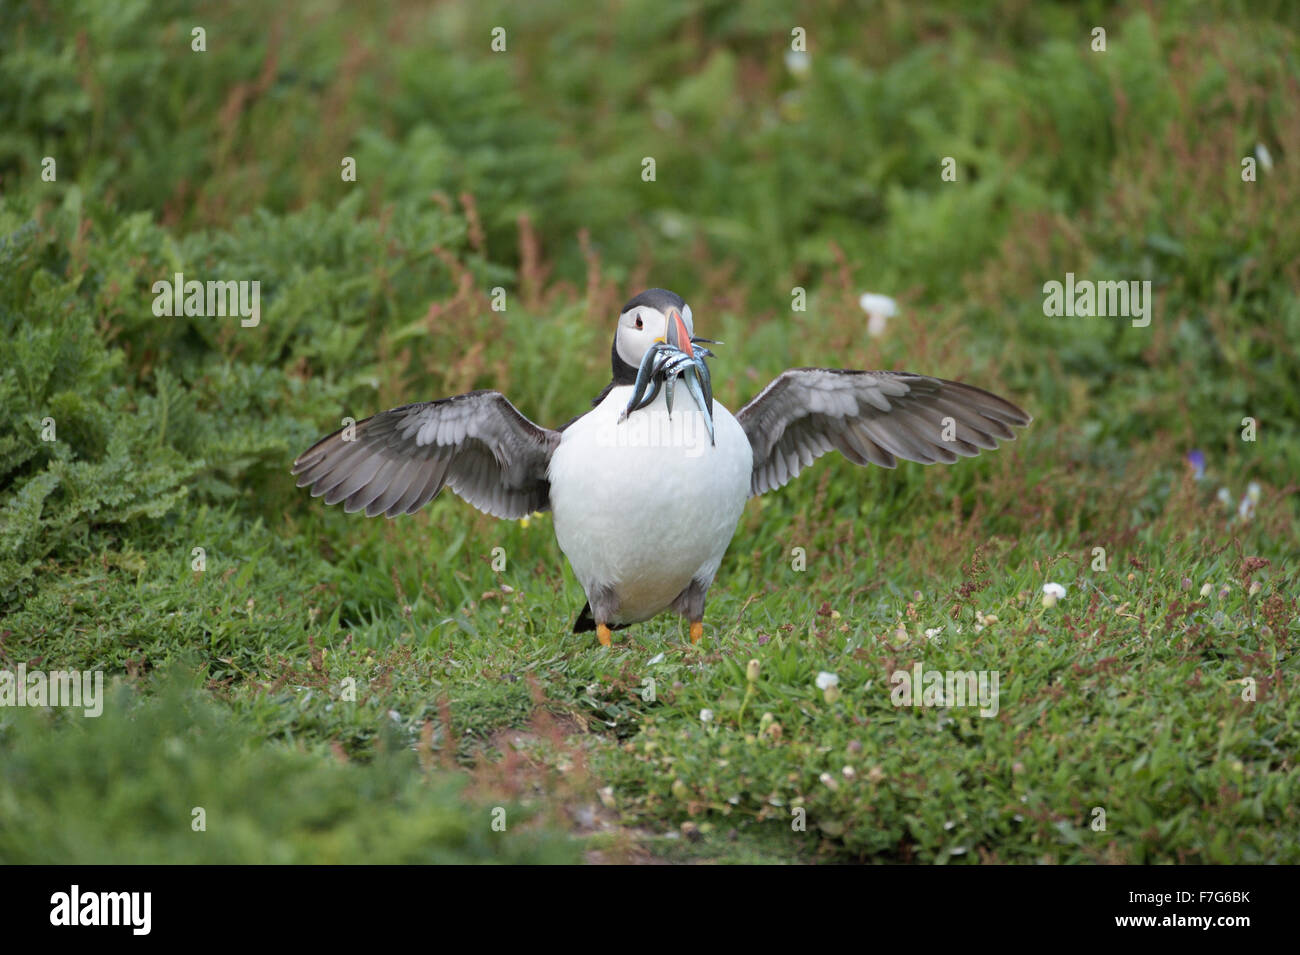 Puffin (Fratercula arctica) on the ground flapping wings with sandeels in beak - Stock Image